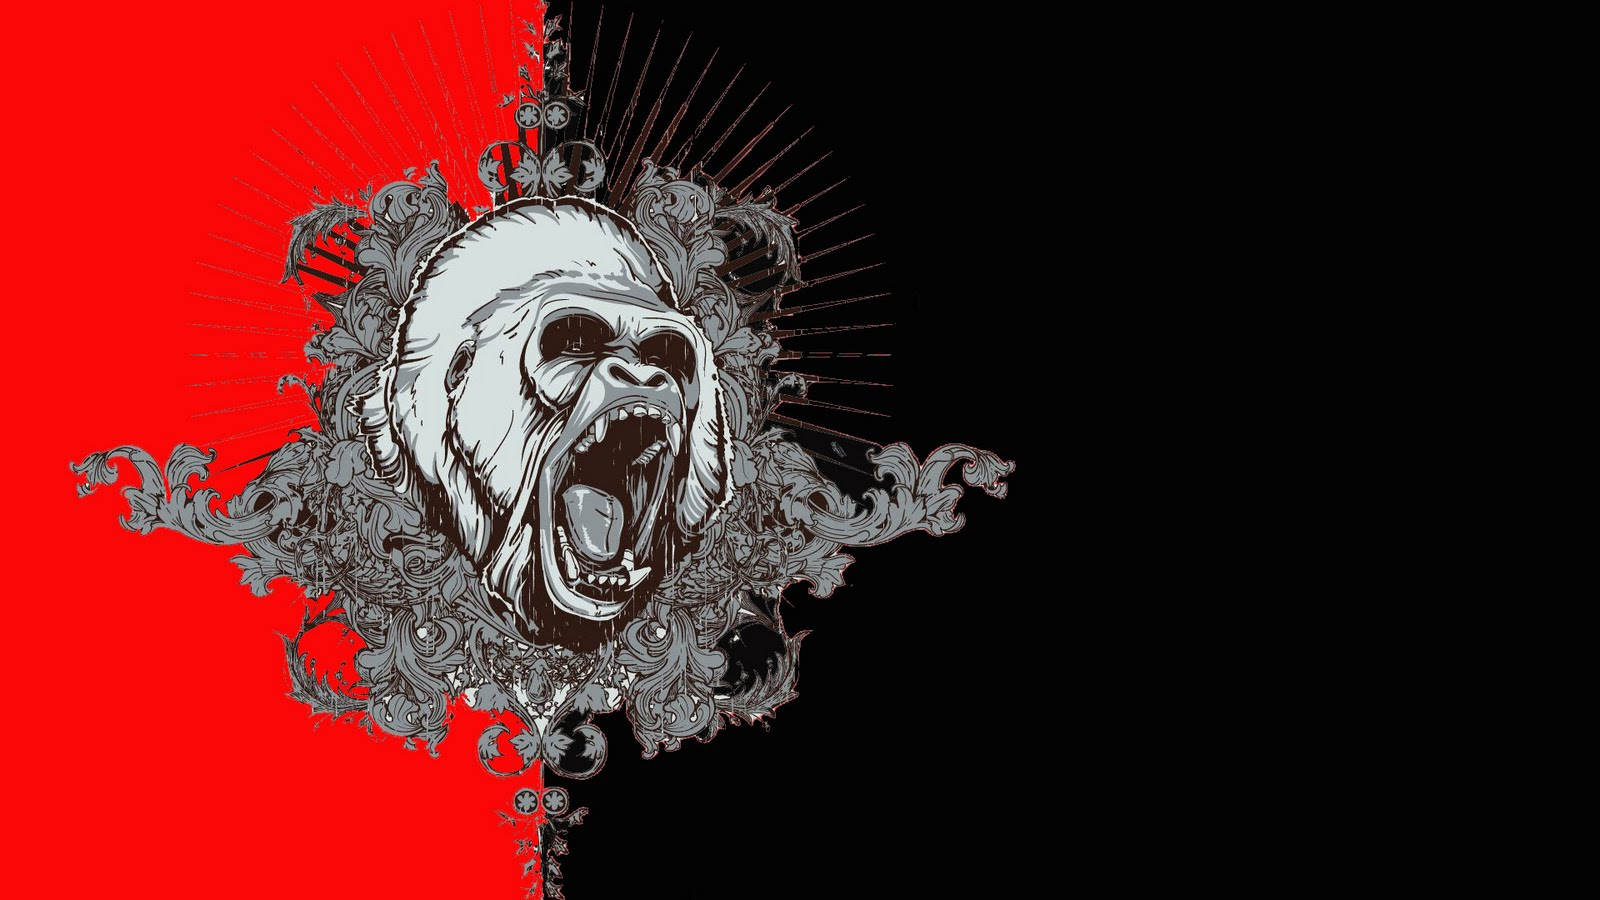 39 Hd Gorilla Wallpaper On Wallpapersafari